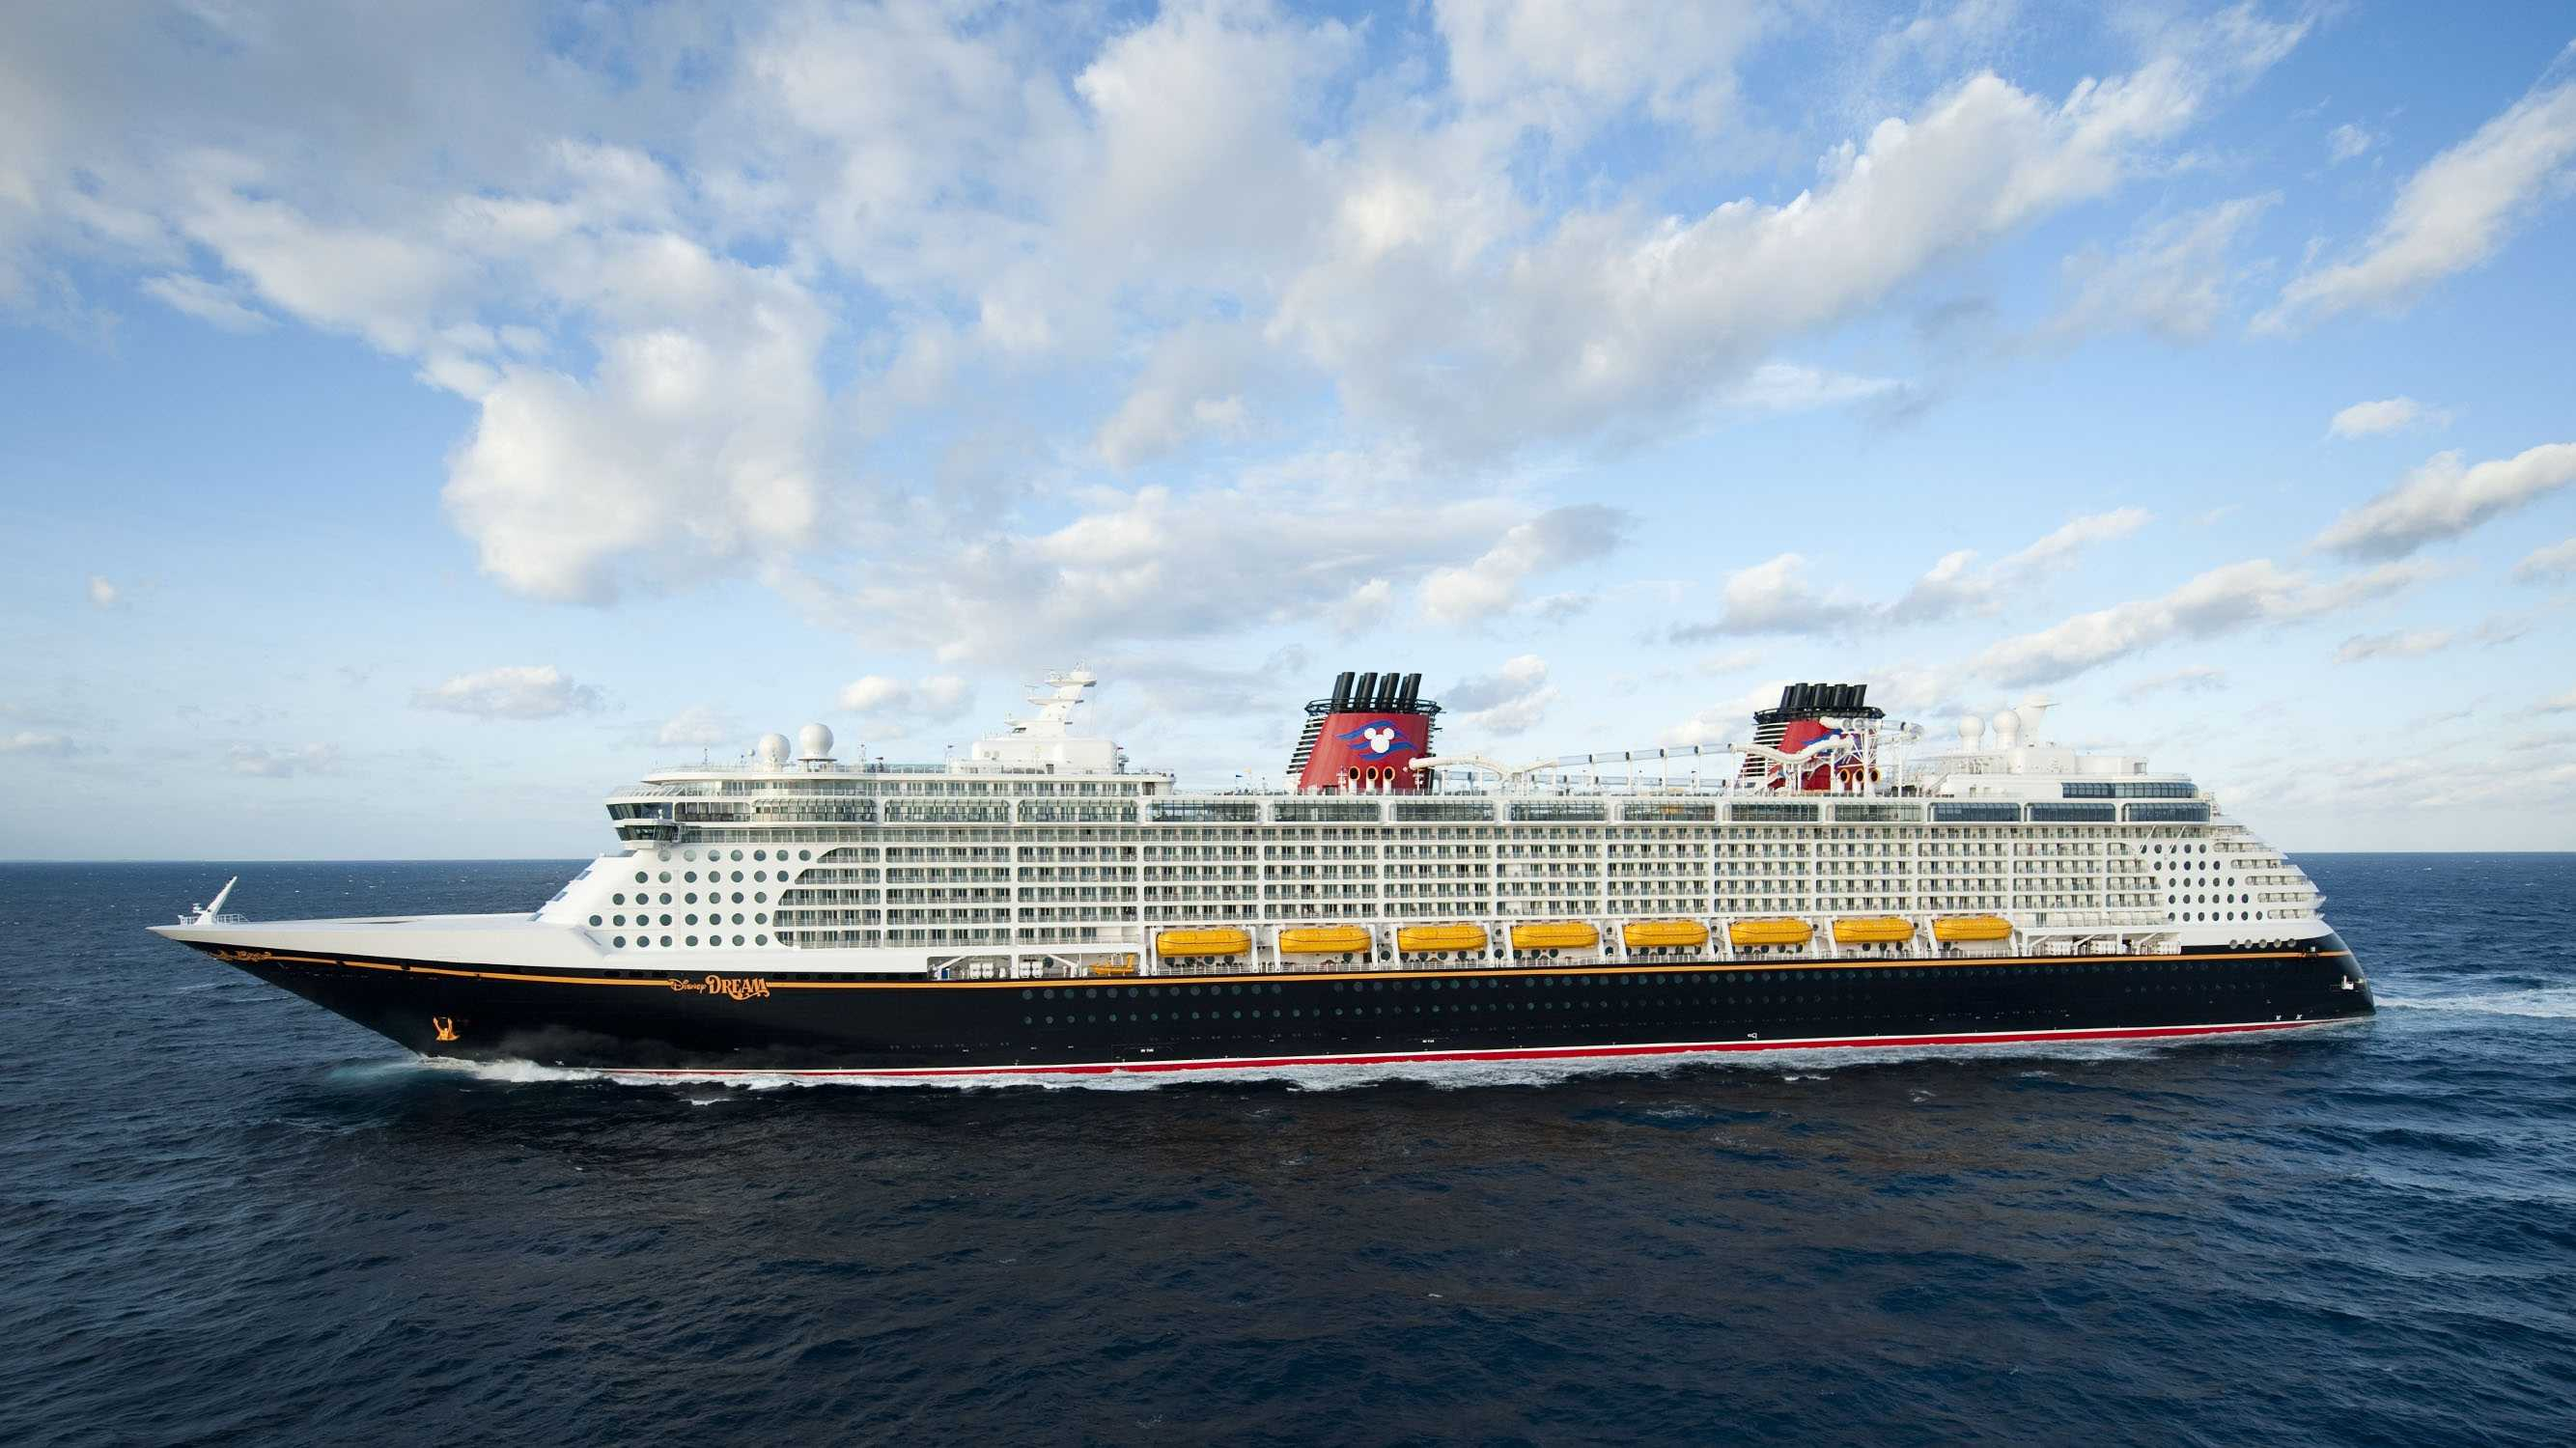 Sorcerer Mickey can be found sleeping on the stern of the Disney Dream.